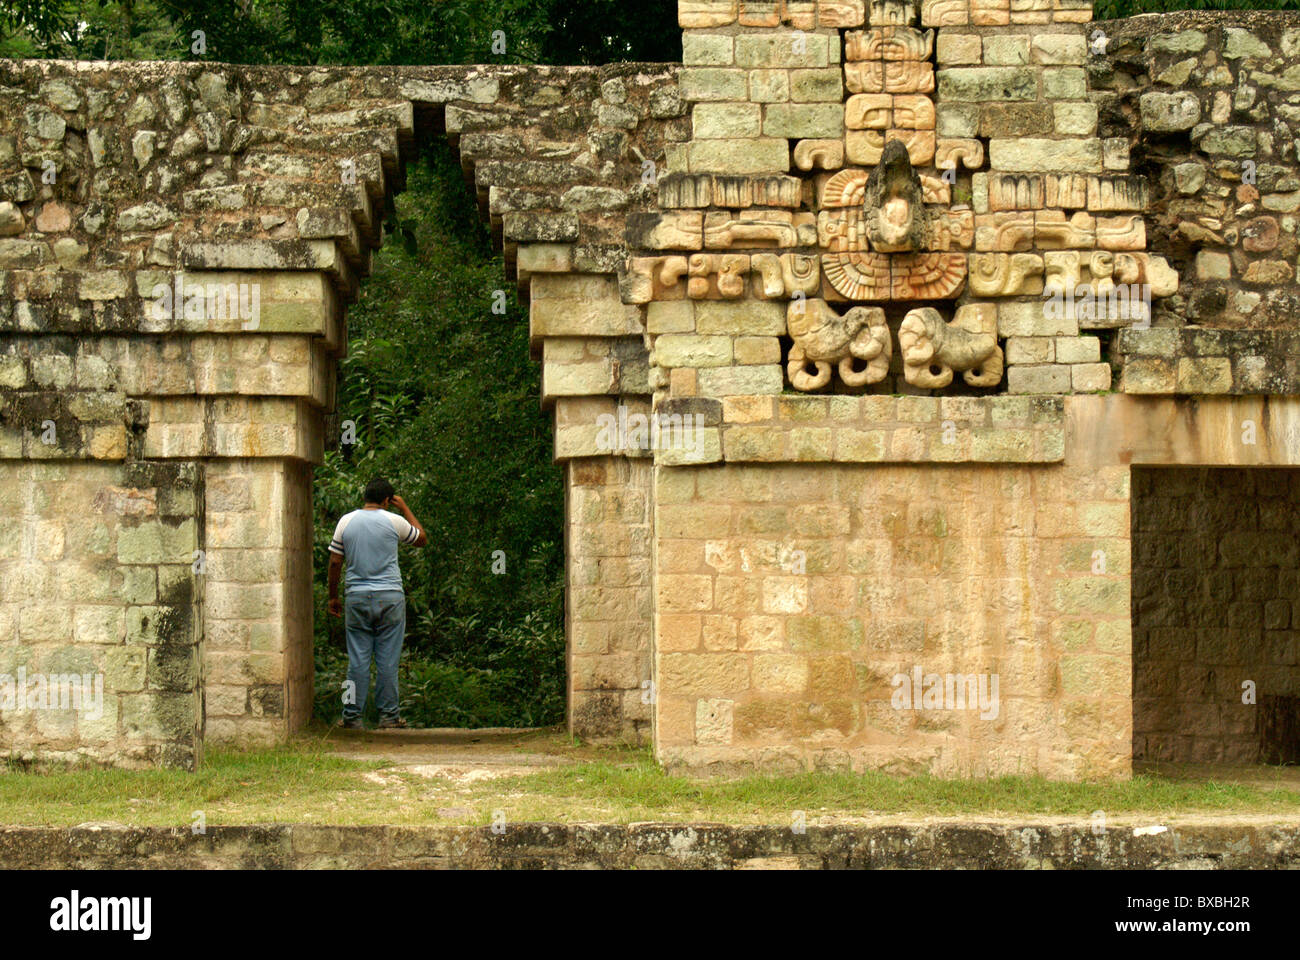 Sculpted Macaw and Maya corbeled arch on the ballcourt at the Mayan ruins of Copan, Honduras. - Stock Image